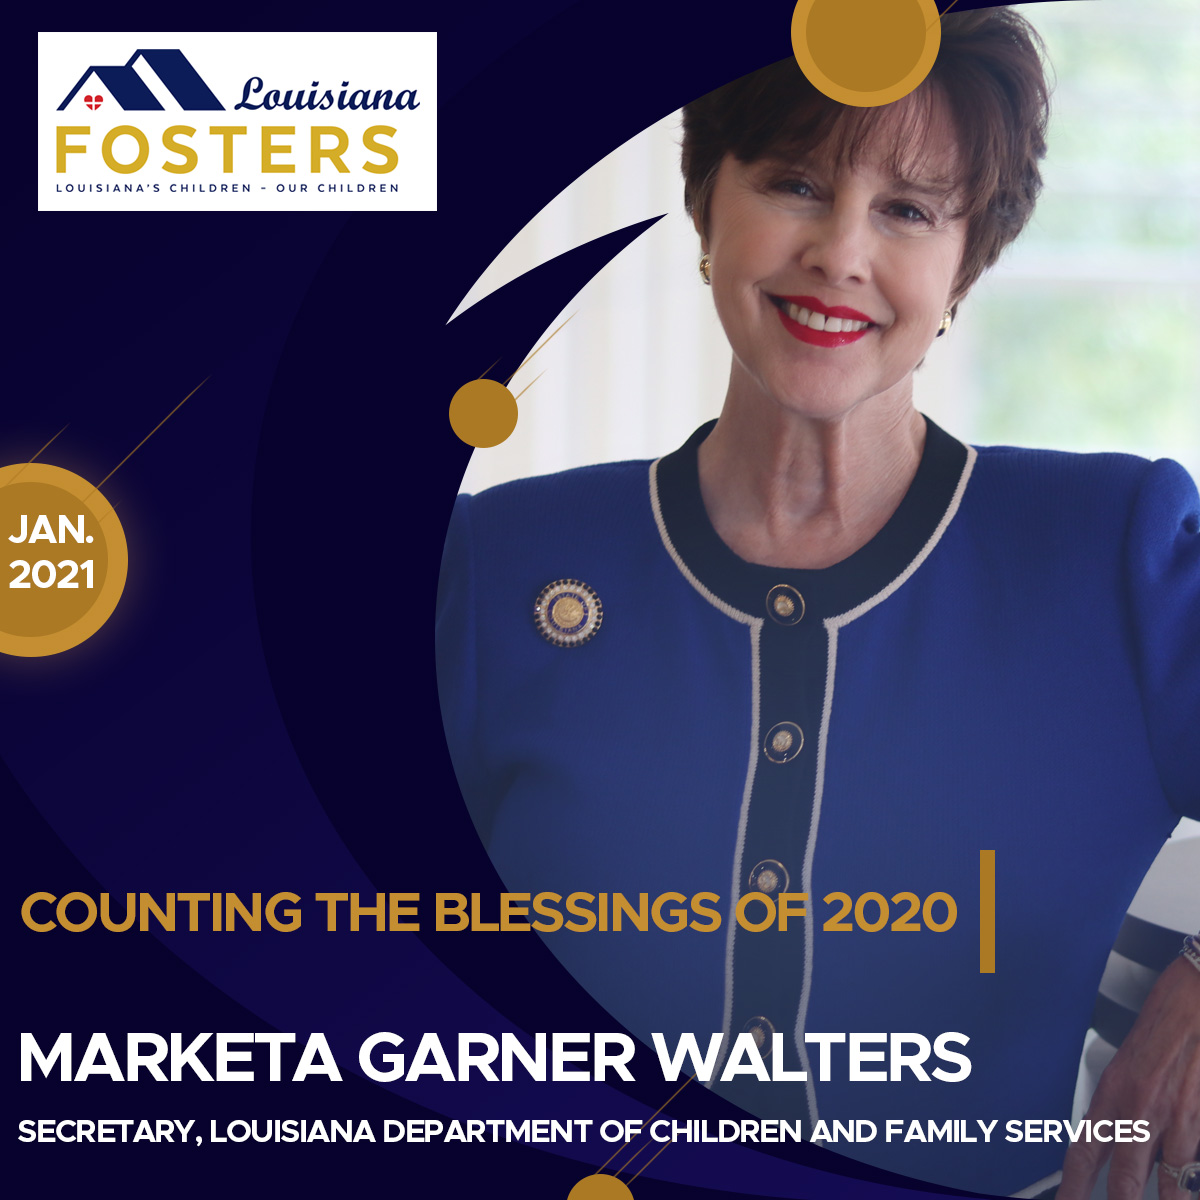 Louisiana Fosters – Counting the Blessings of 2020